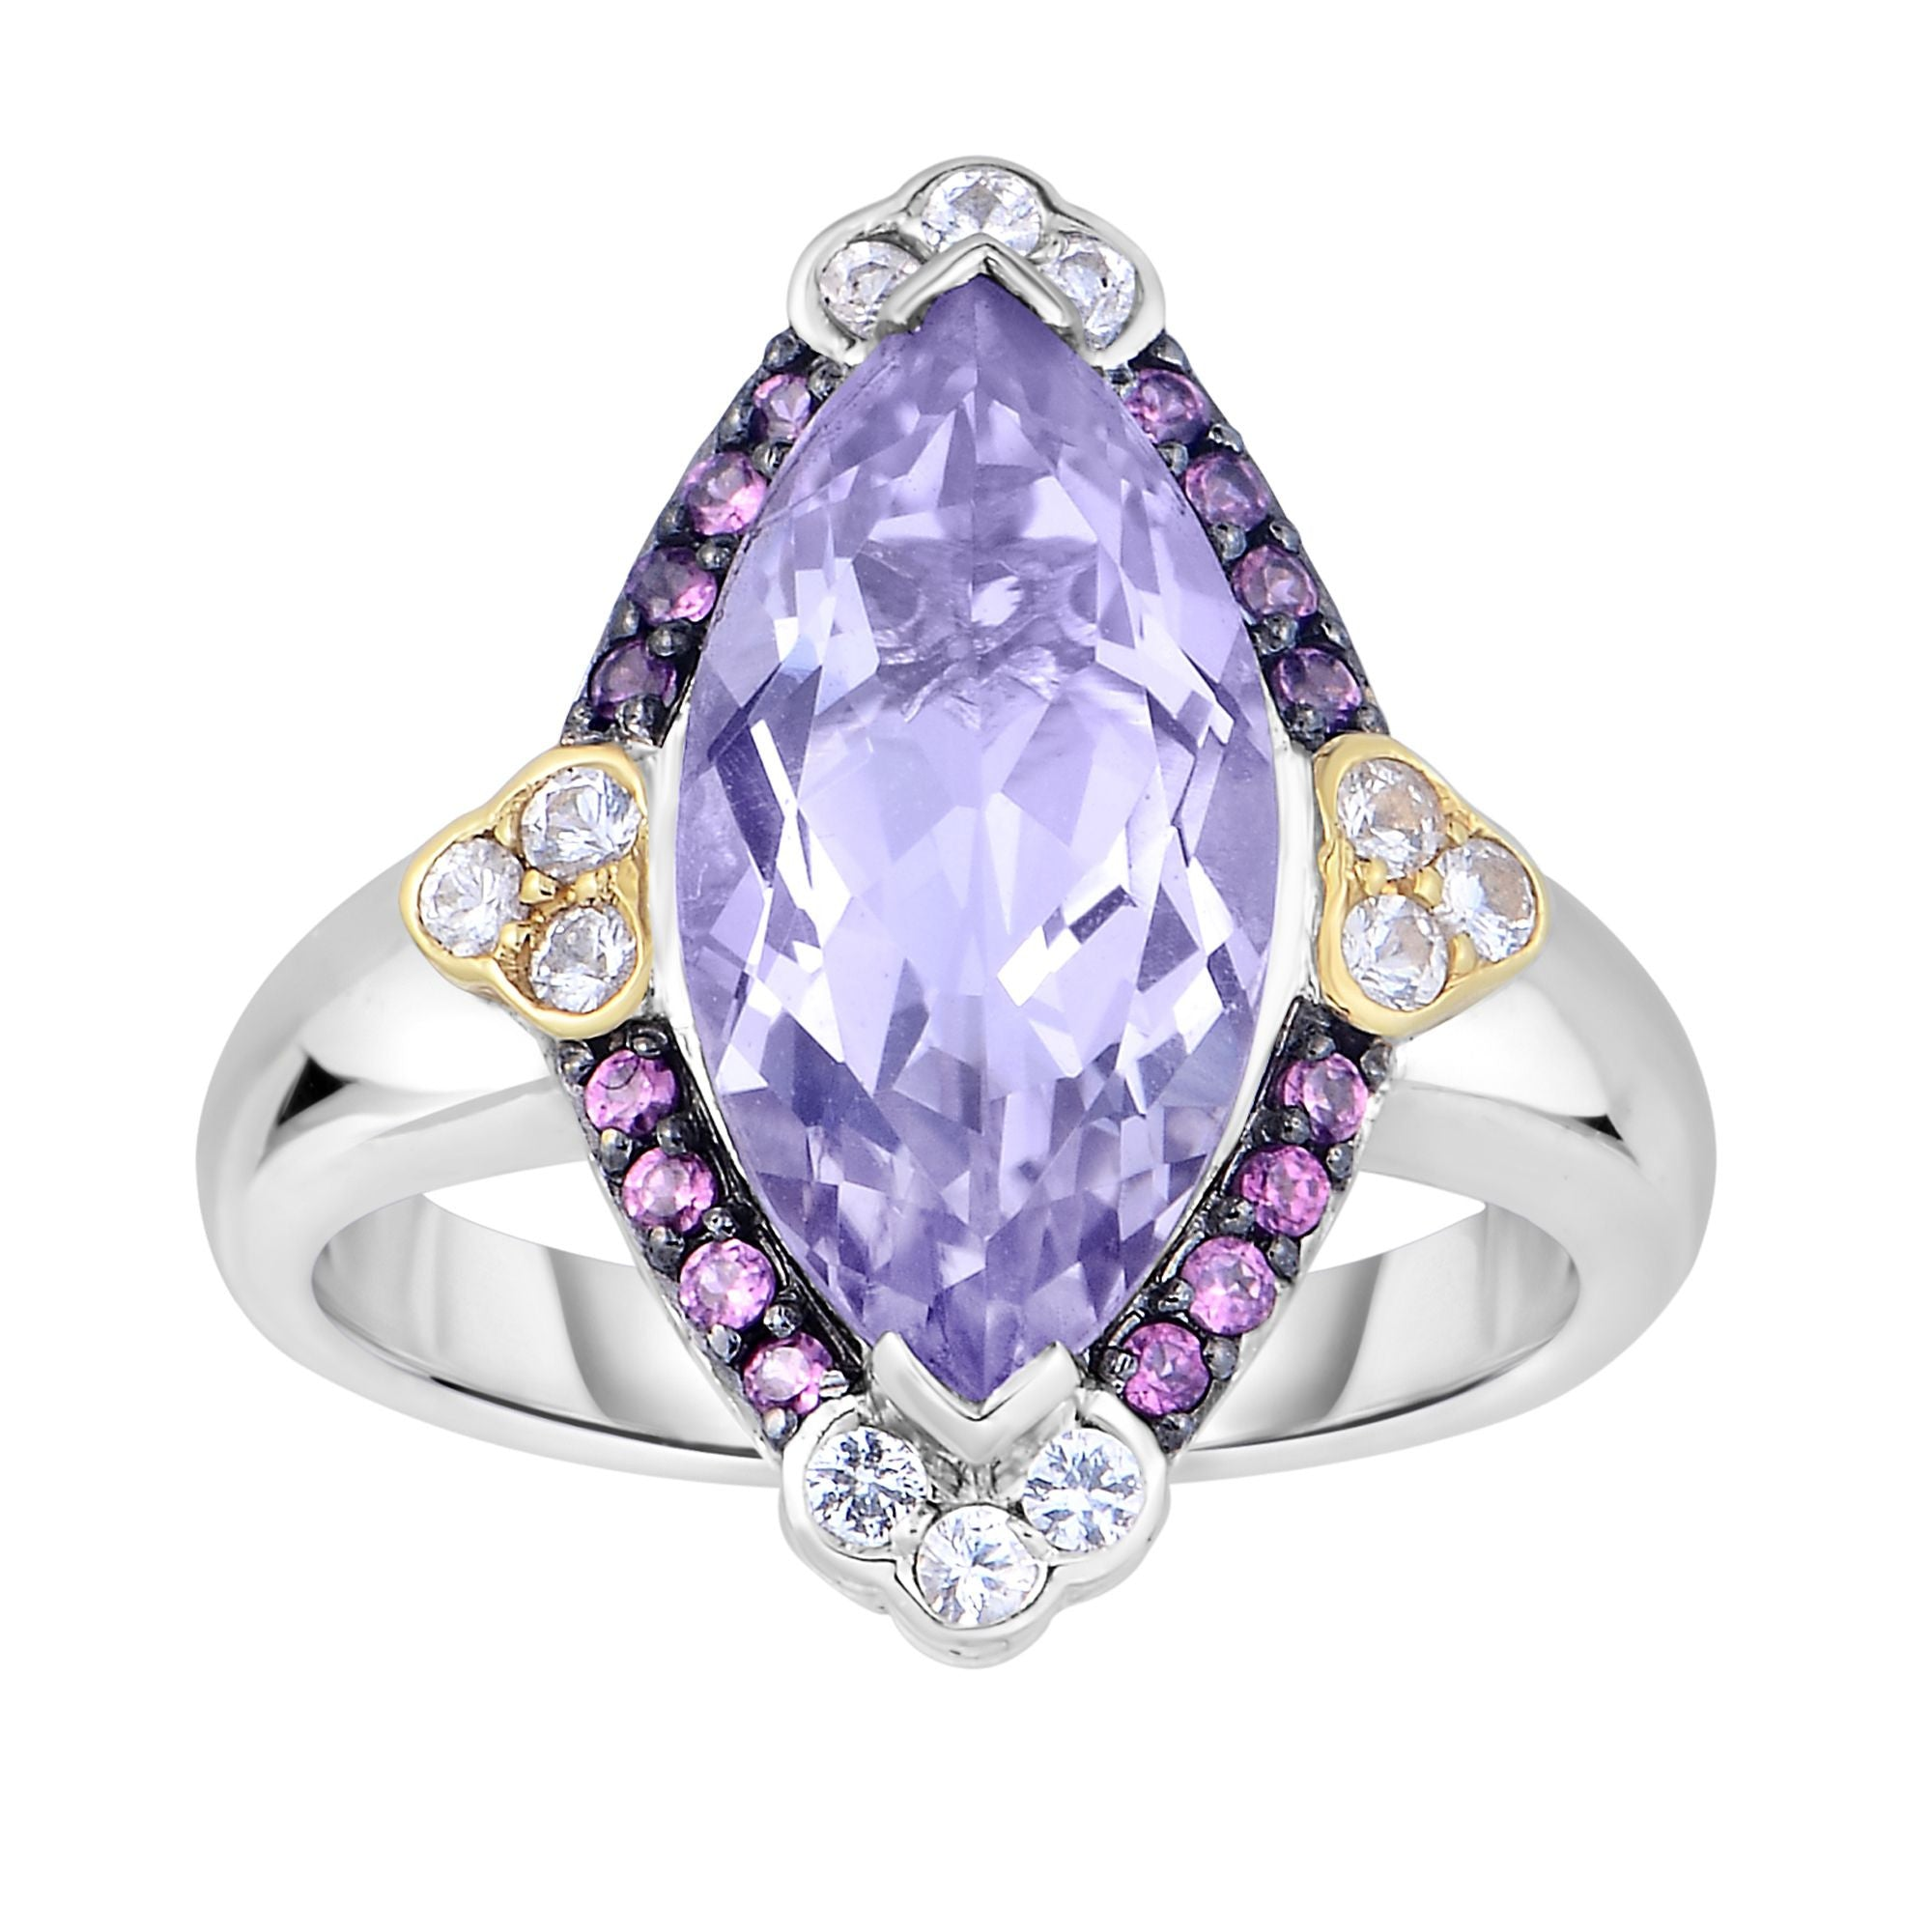 amethyst products valentina diamond costagli green yellow an petite brillante rings ring gold paolo engagement amethist